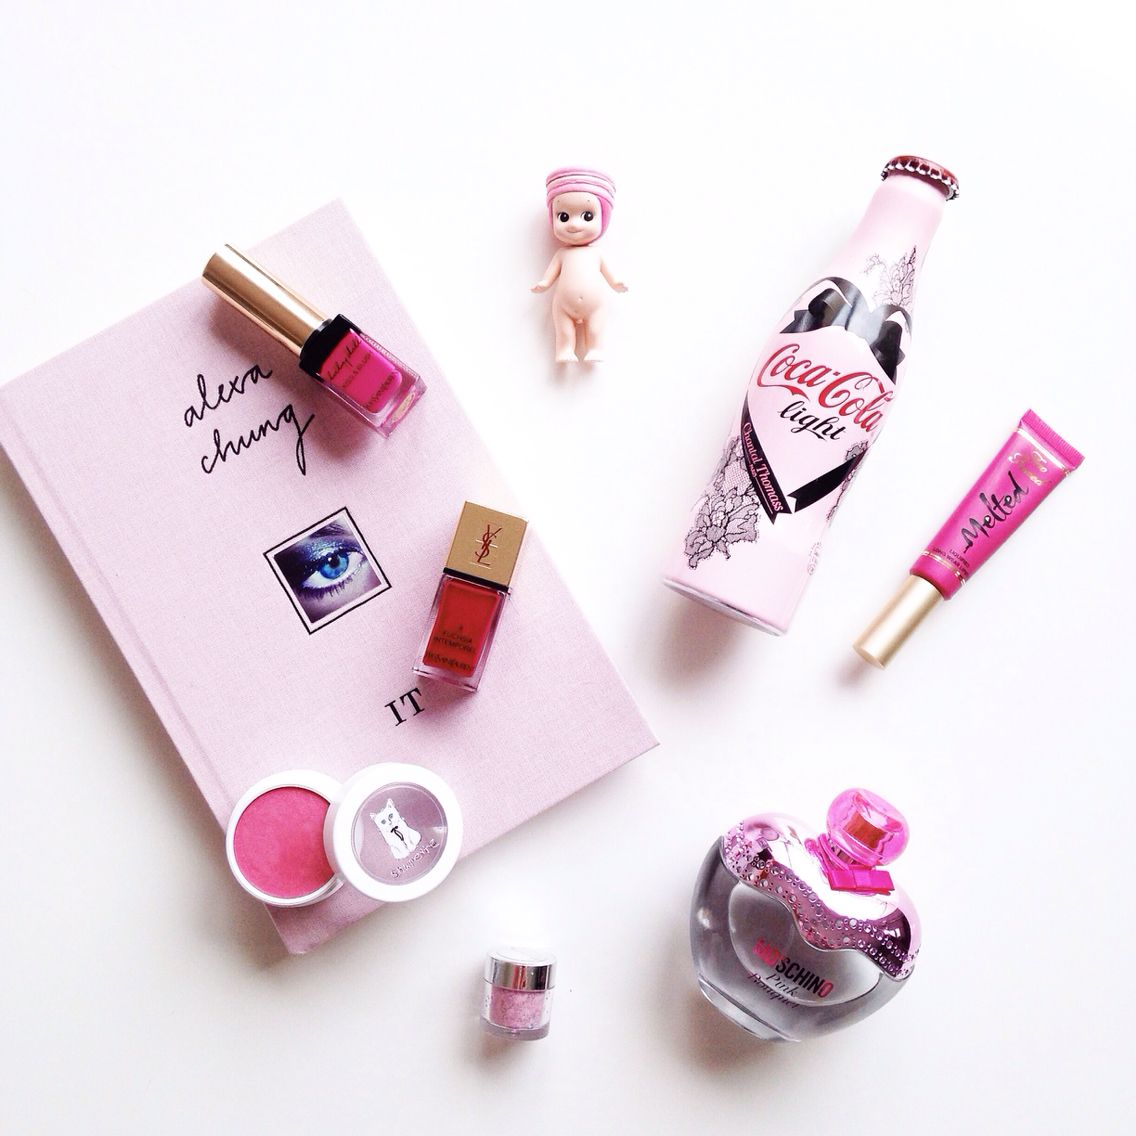 Think pink.   #pinkflatlay #beauty #pink